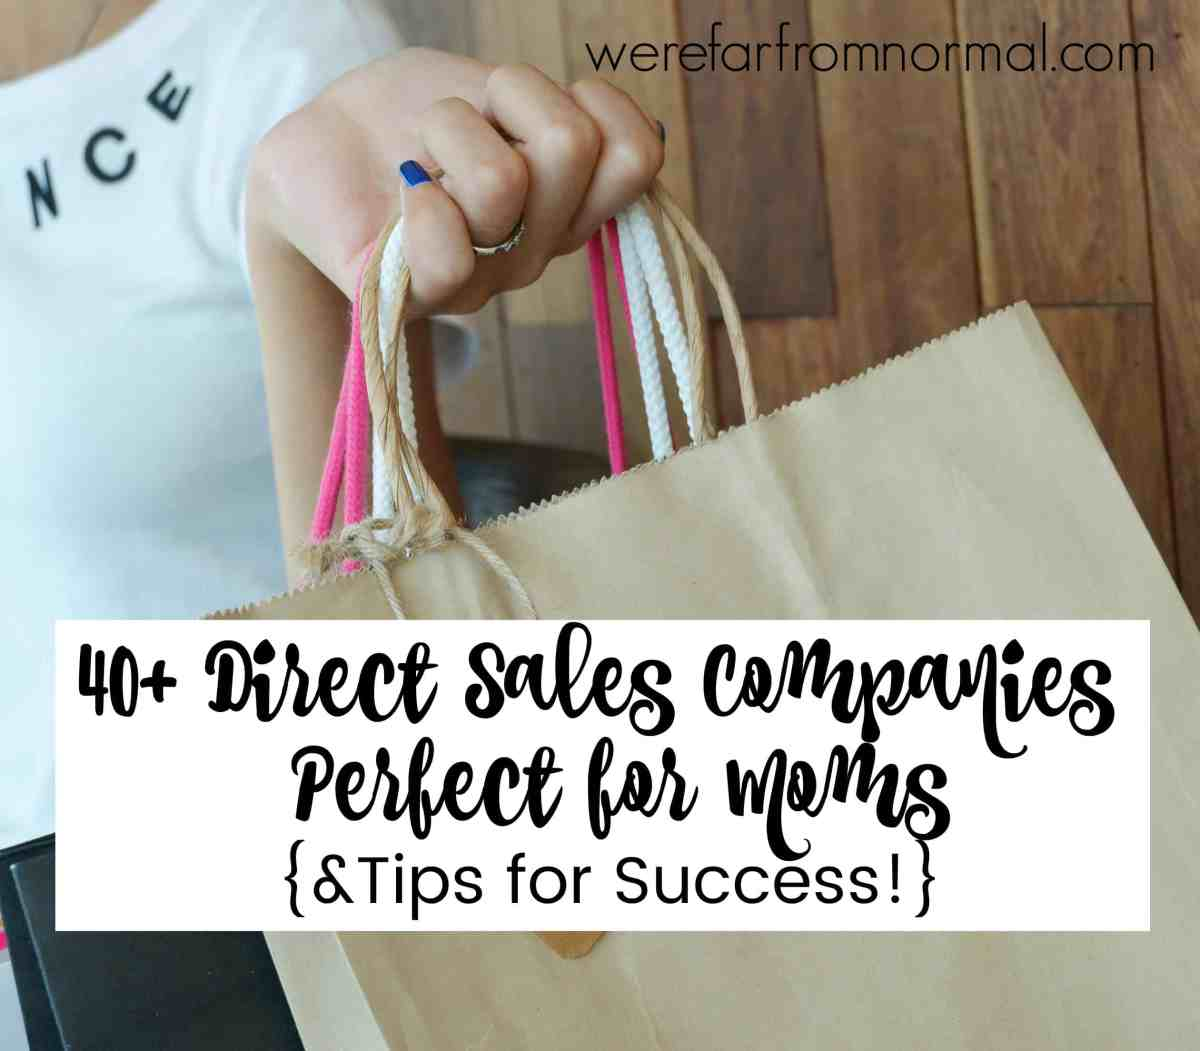 40+ Perfect Direct Sales Companies for Moms! {& Tips for Success!}